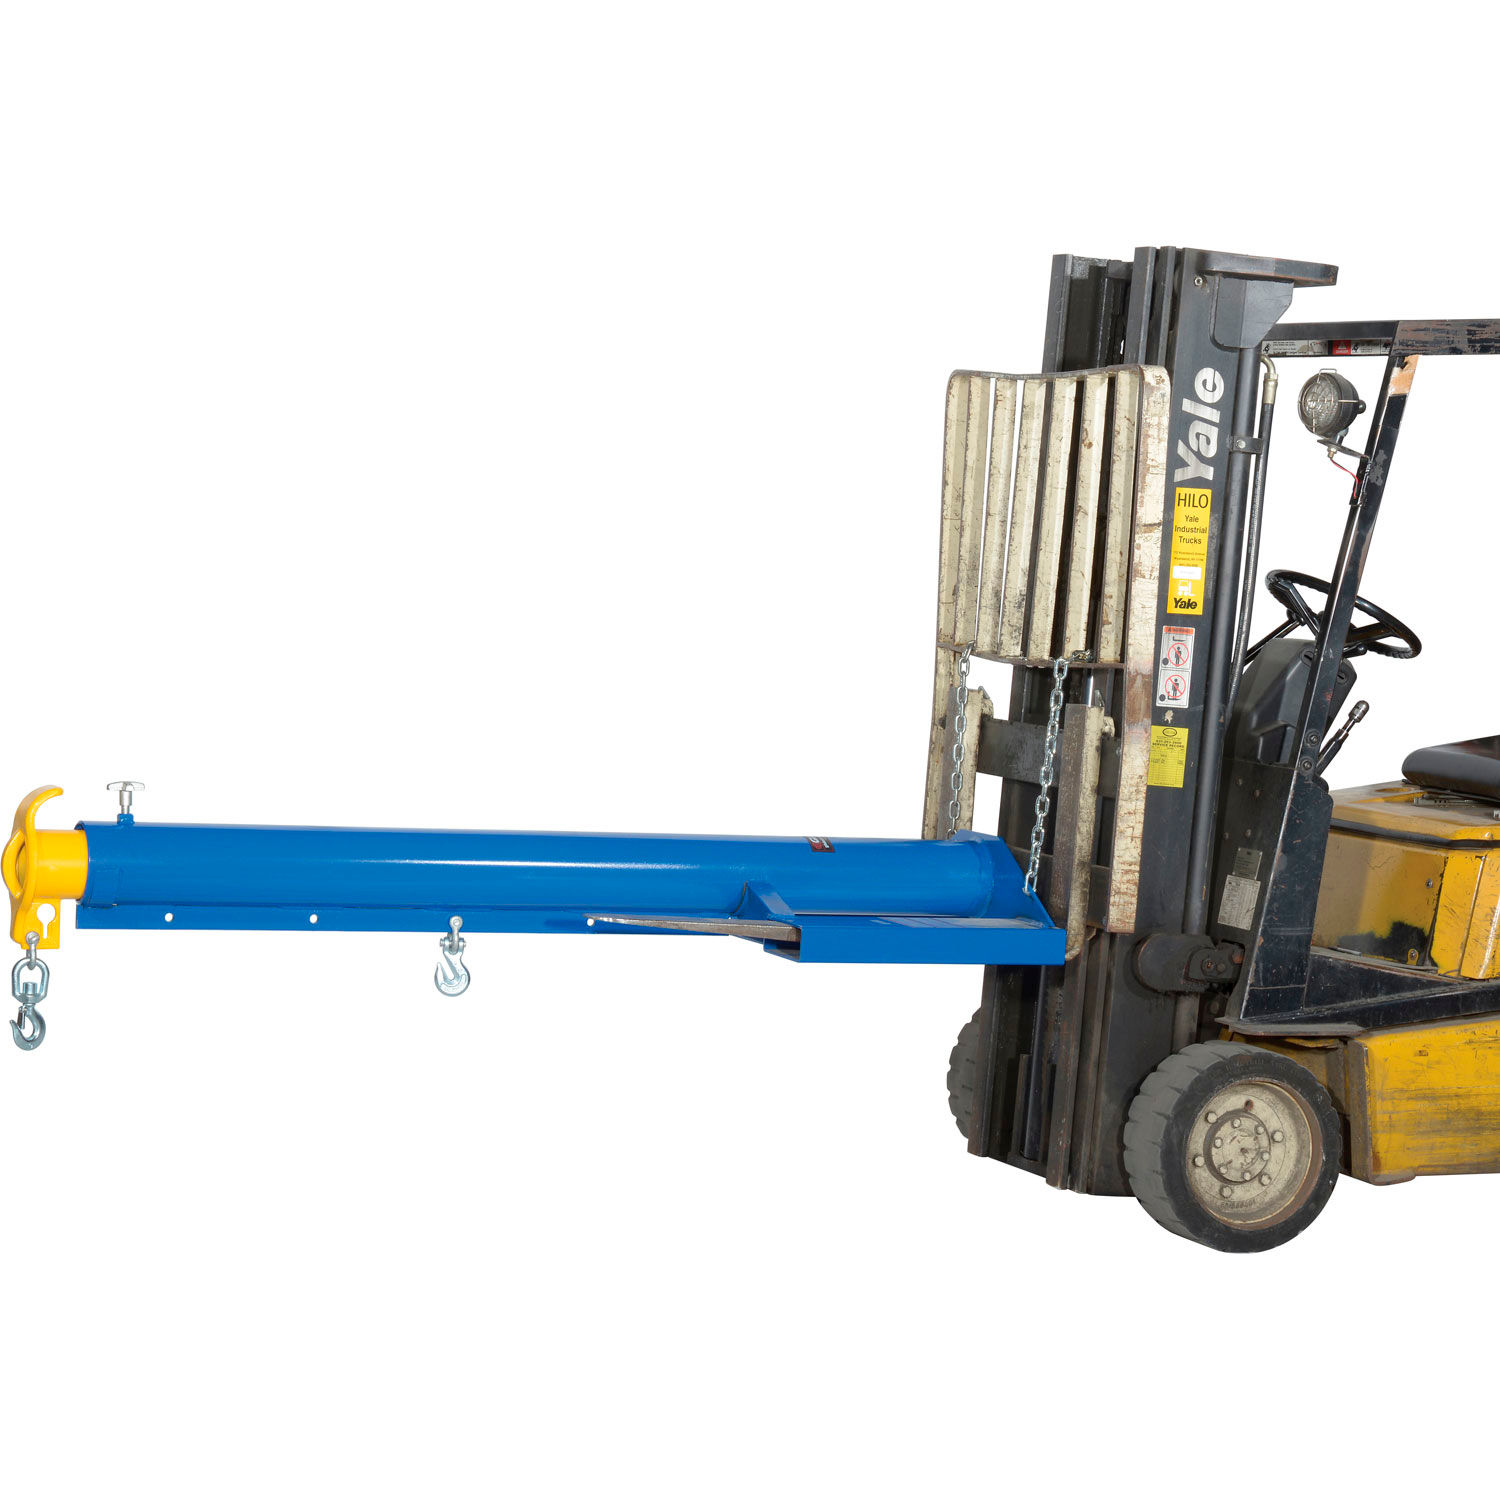 Forklifts & Attachments | Cranes & Hooks | Best Value